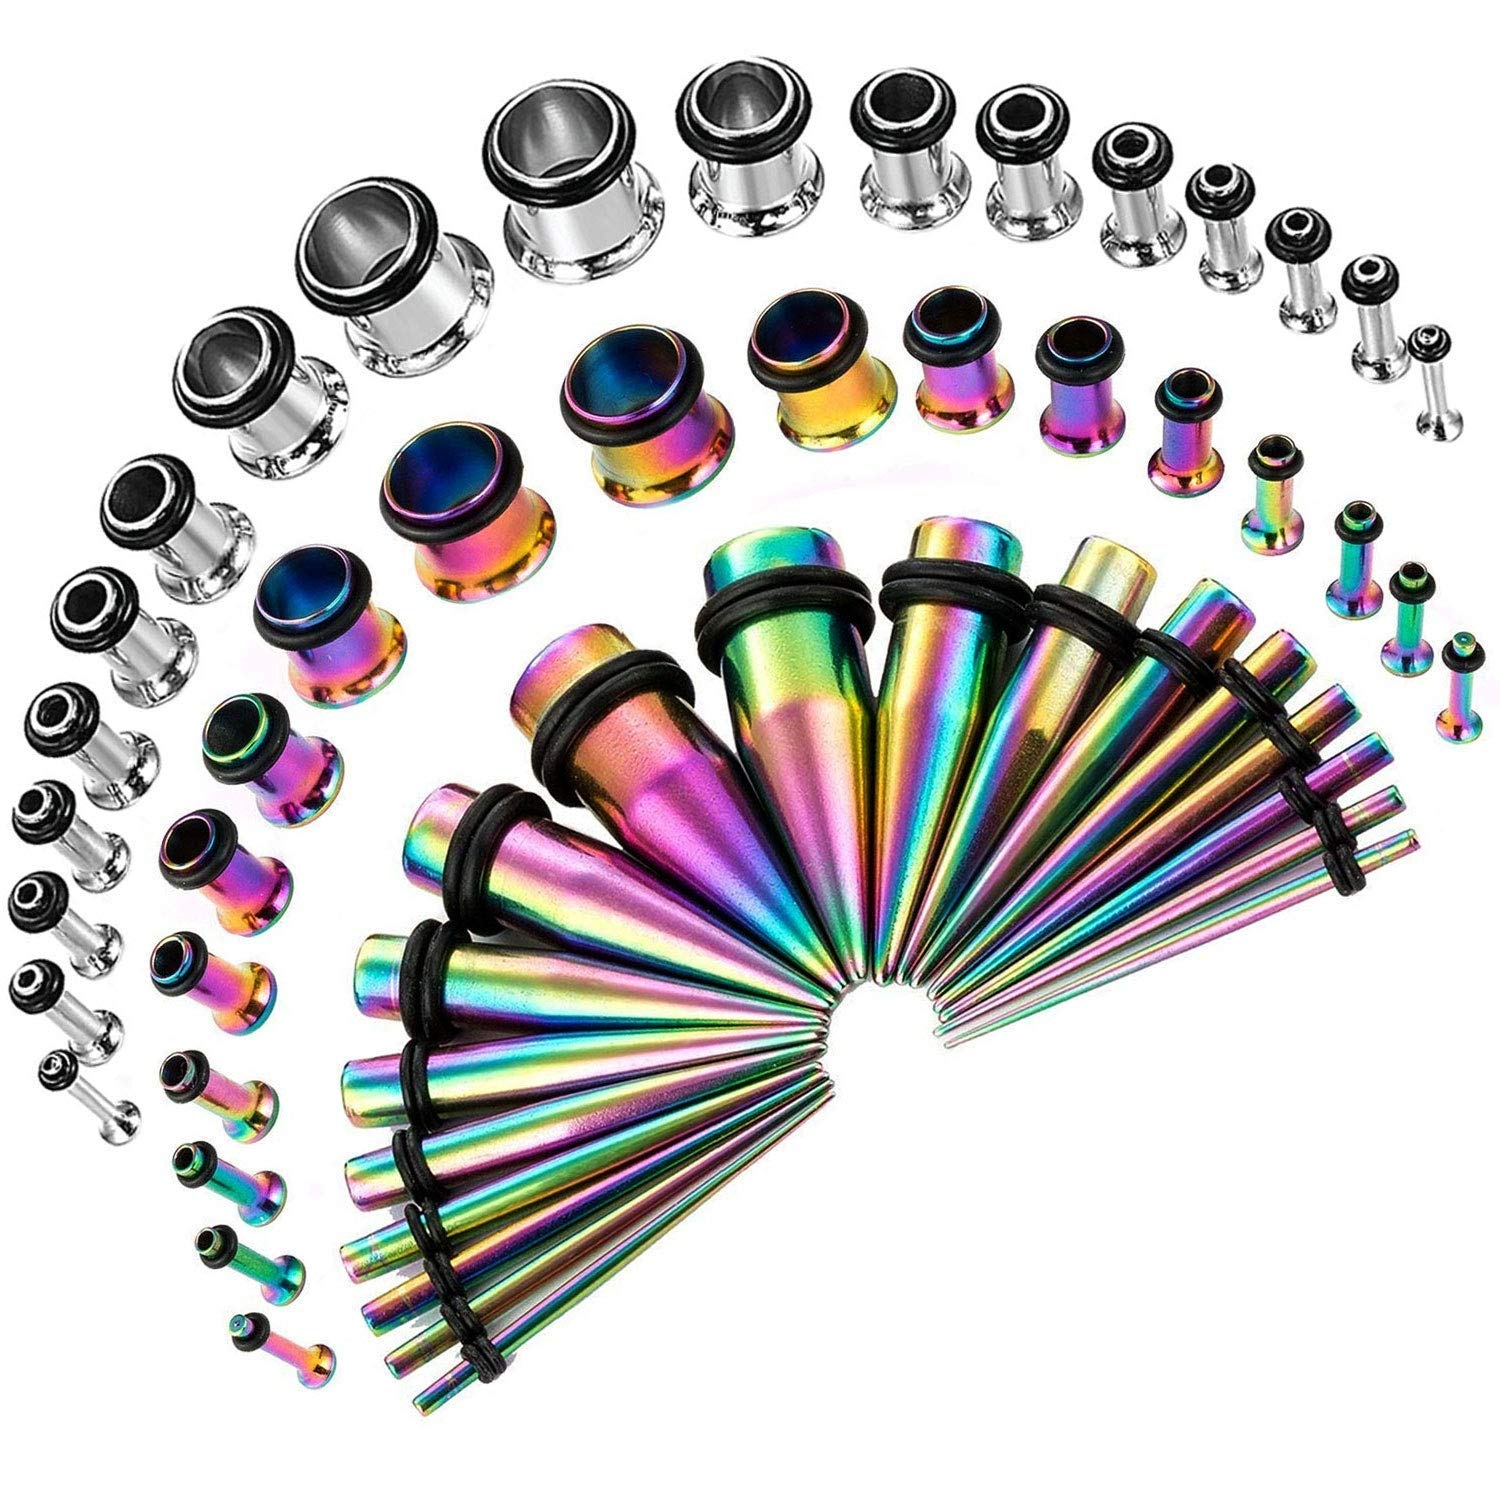 CABBE KALLO 54PCS Ear Gauge Stretching Kit Stainless Steel Tapers and Plugs Set Eyelet 14G-00G (Rainbow)